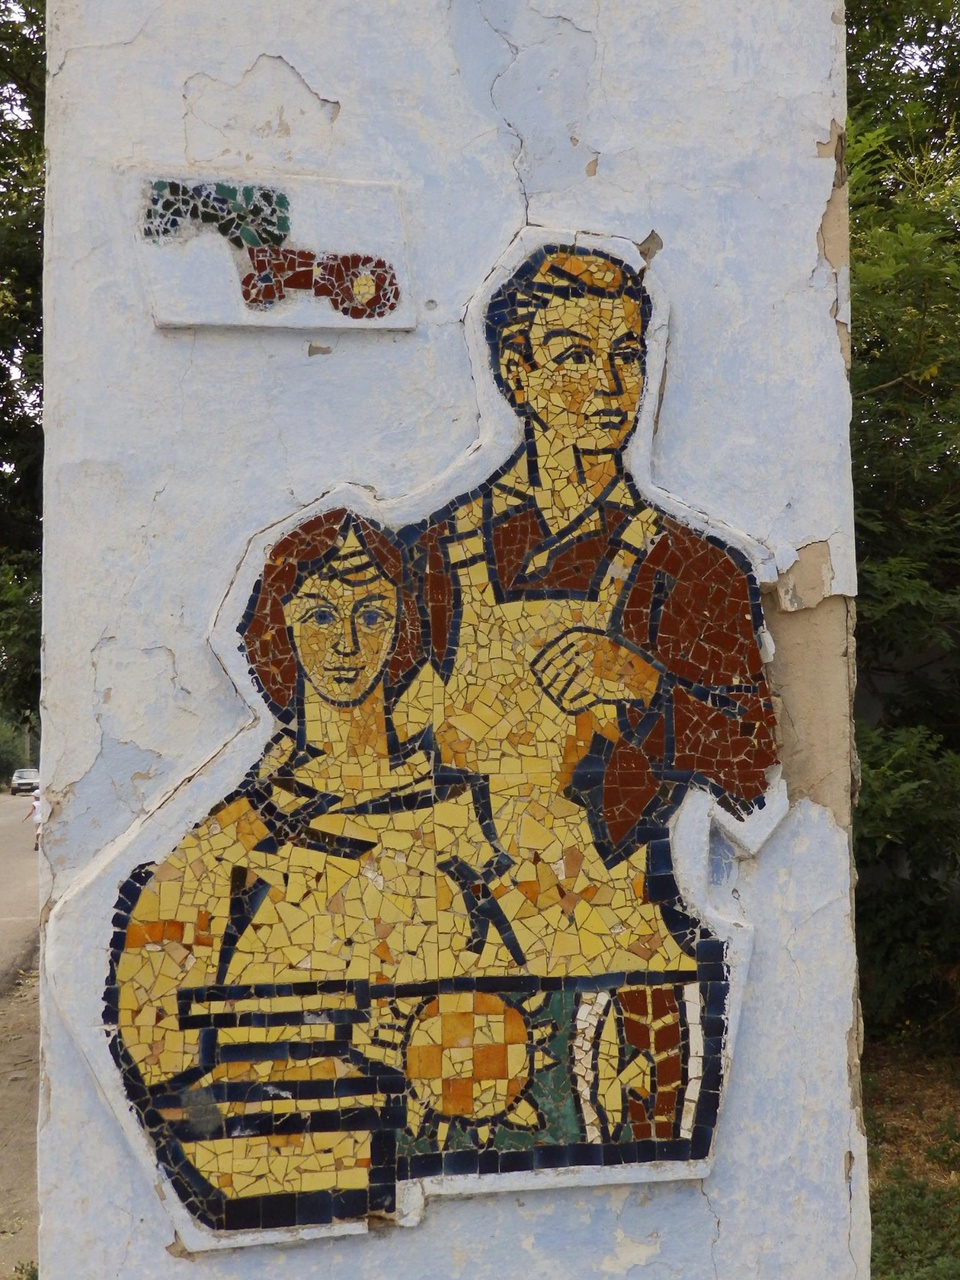 Decorative stela. Lyubimovka village